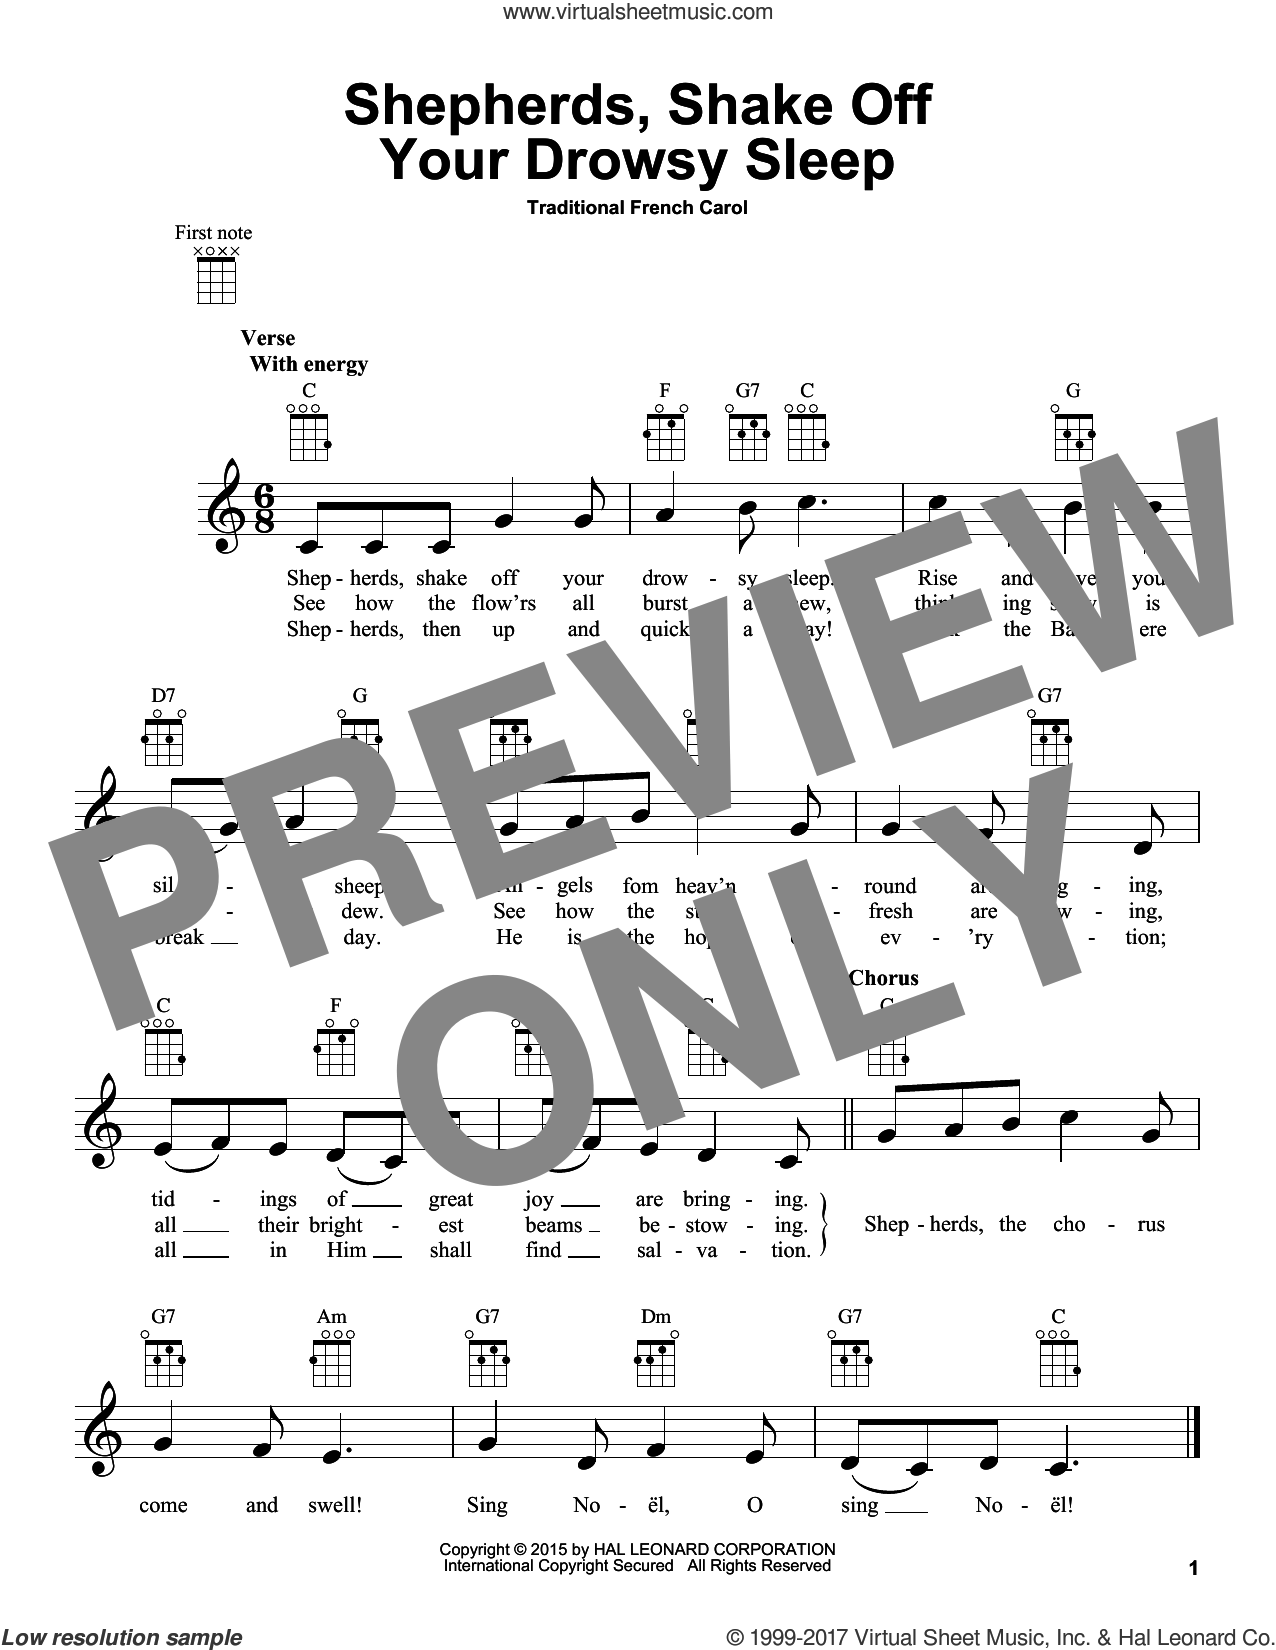 Shepherds, Shake Off Your Drowsy Sleep sheet music for ukulele. Score Image Preview.